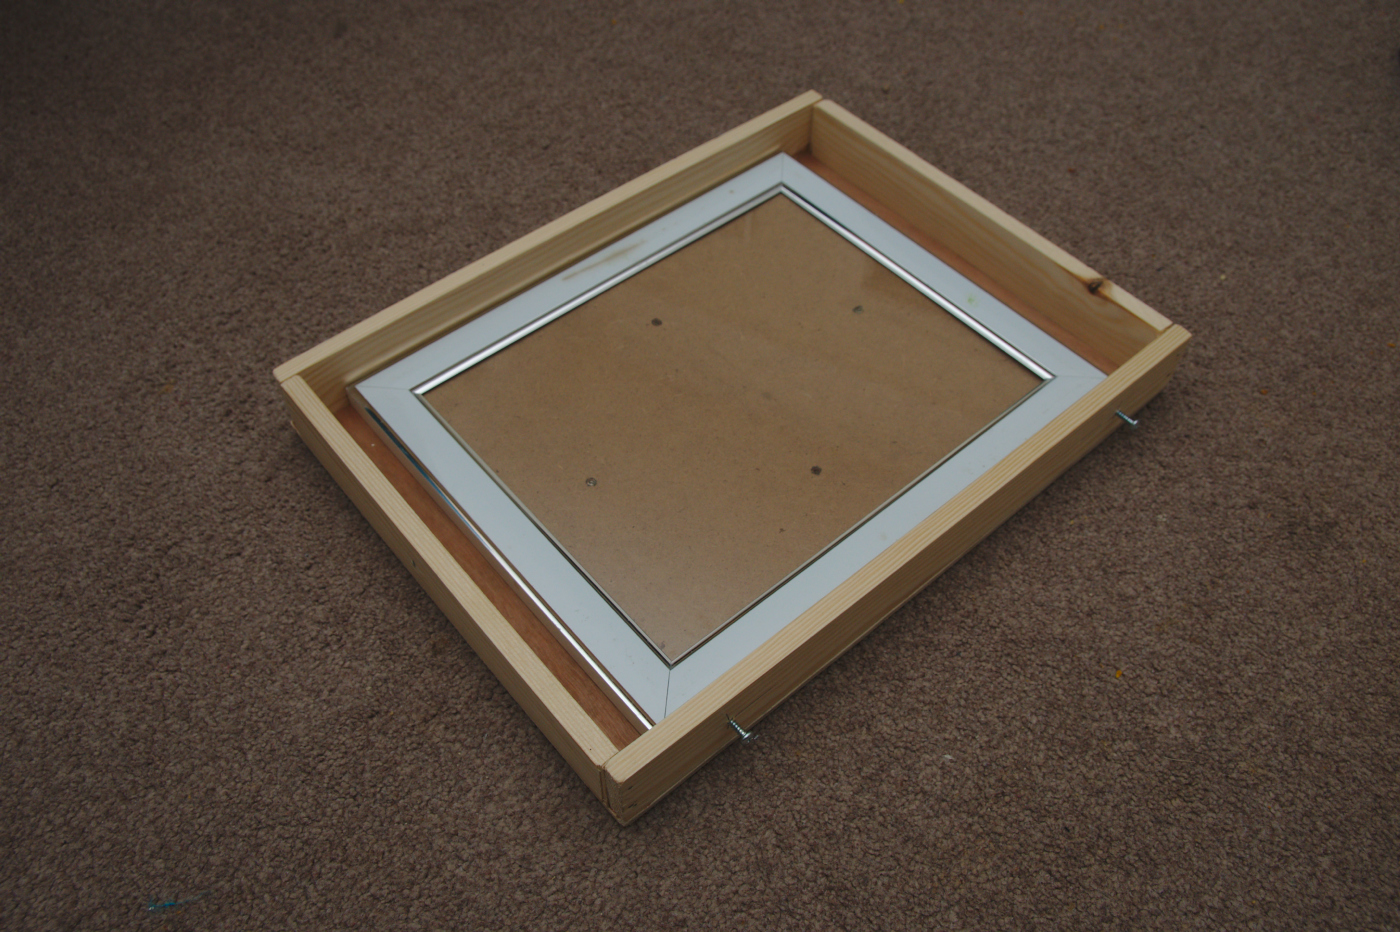 The light box base